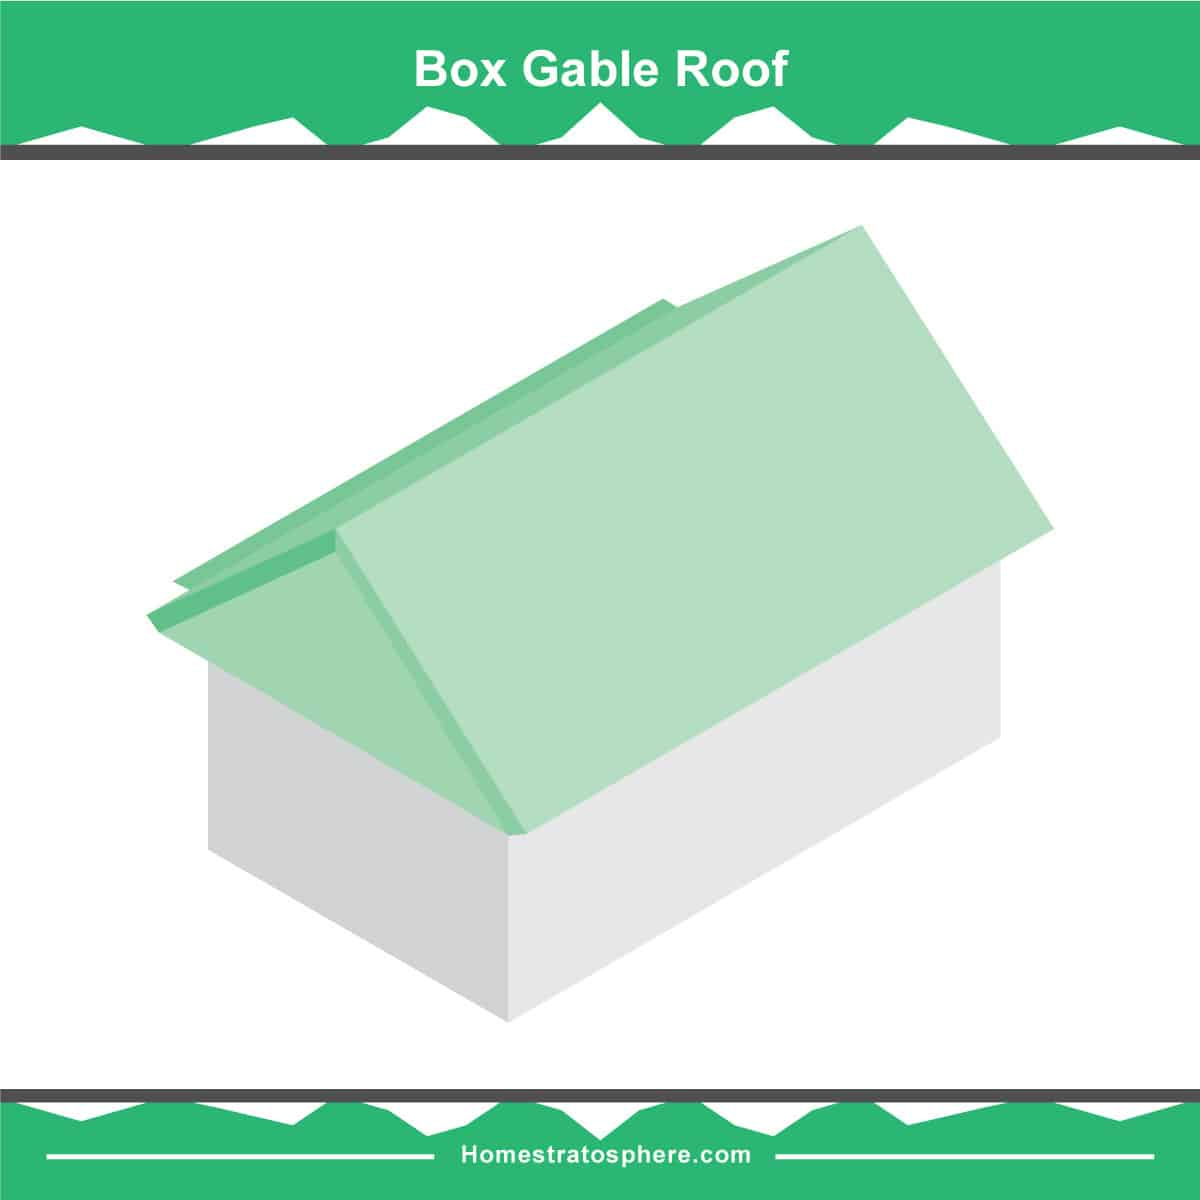 Box Gable roof diagram